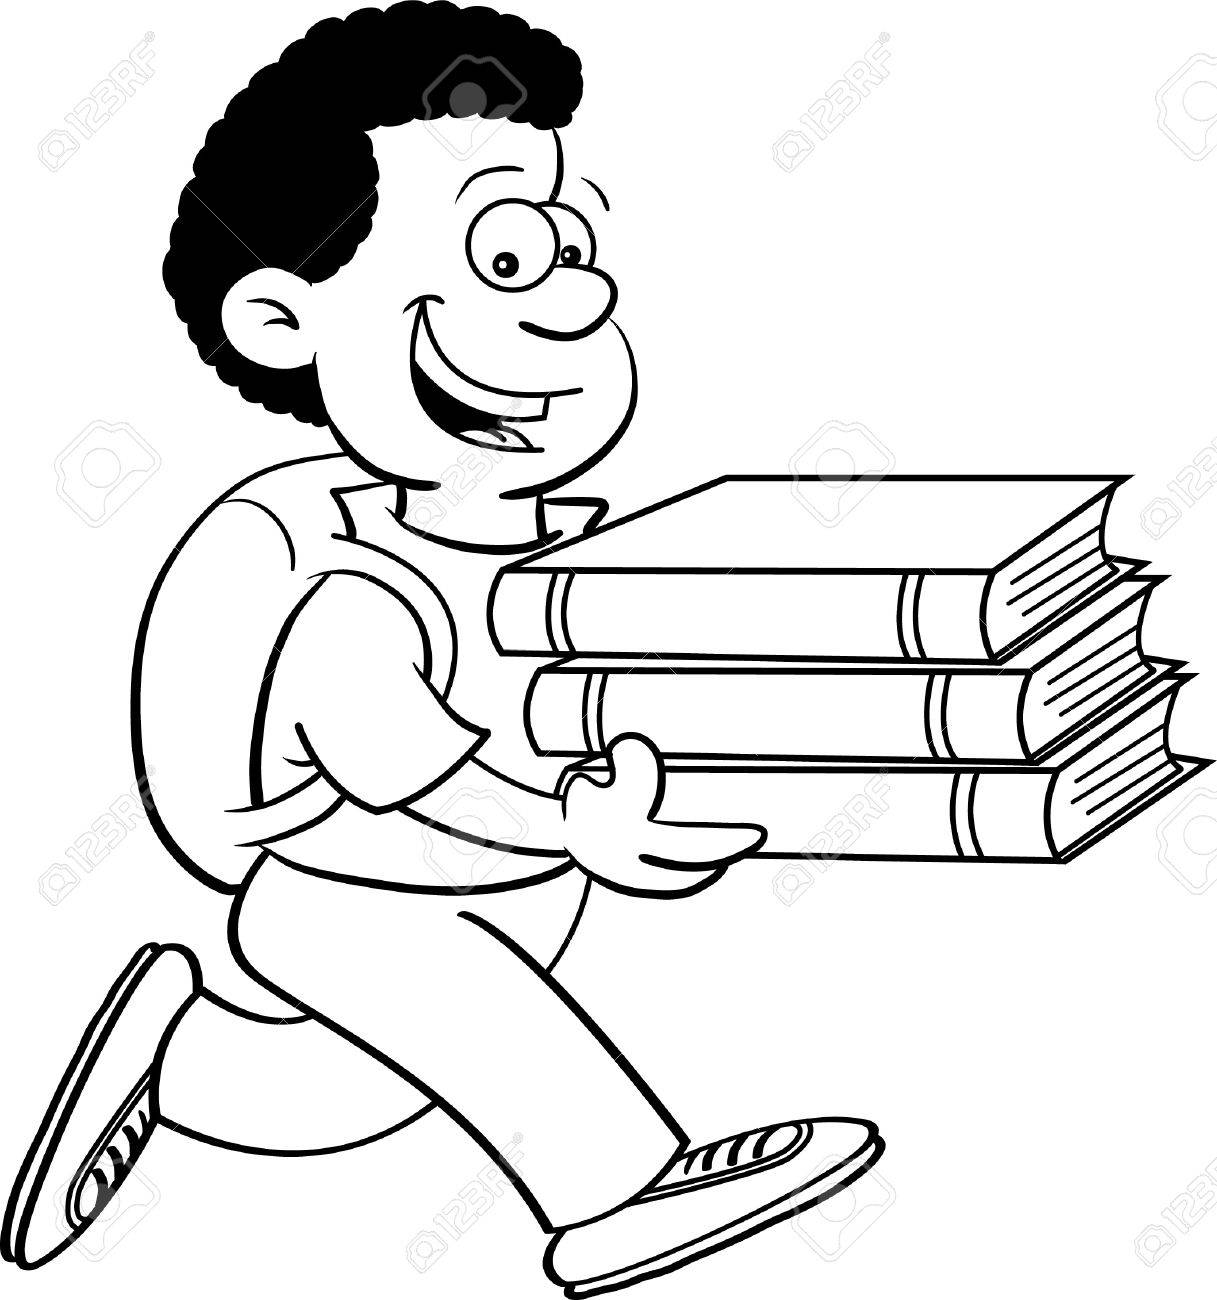 Black and white illustration of a kid carrying books.